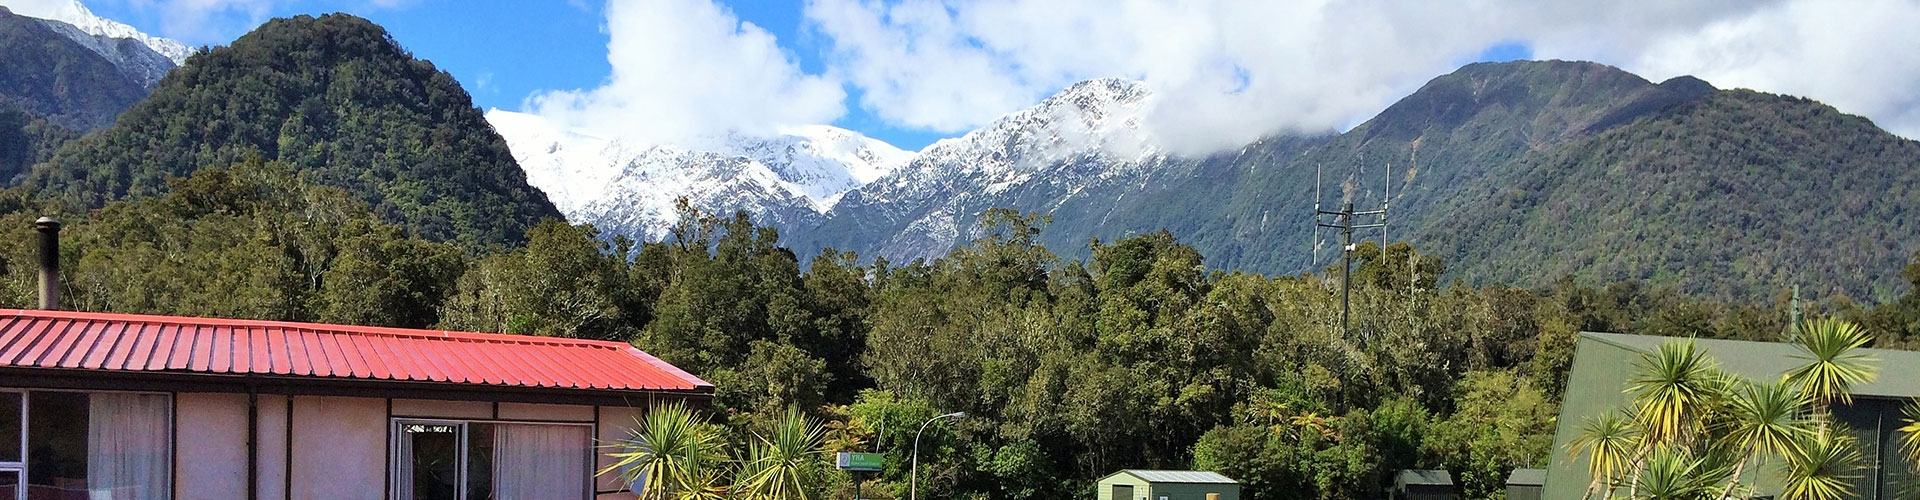 Chateau Backpackers & Motels in Franz Josef